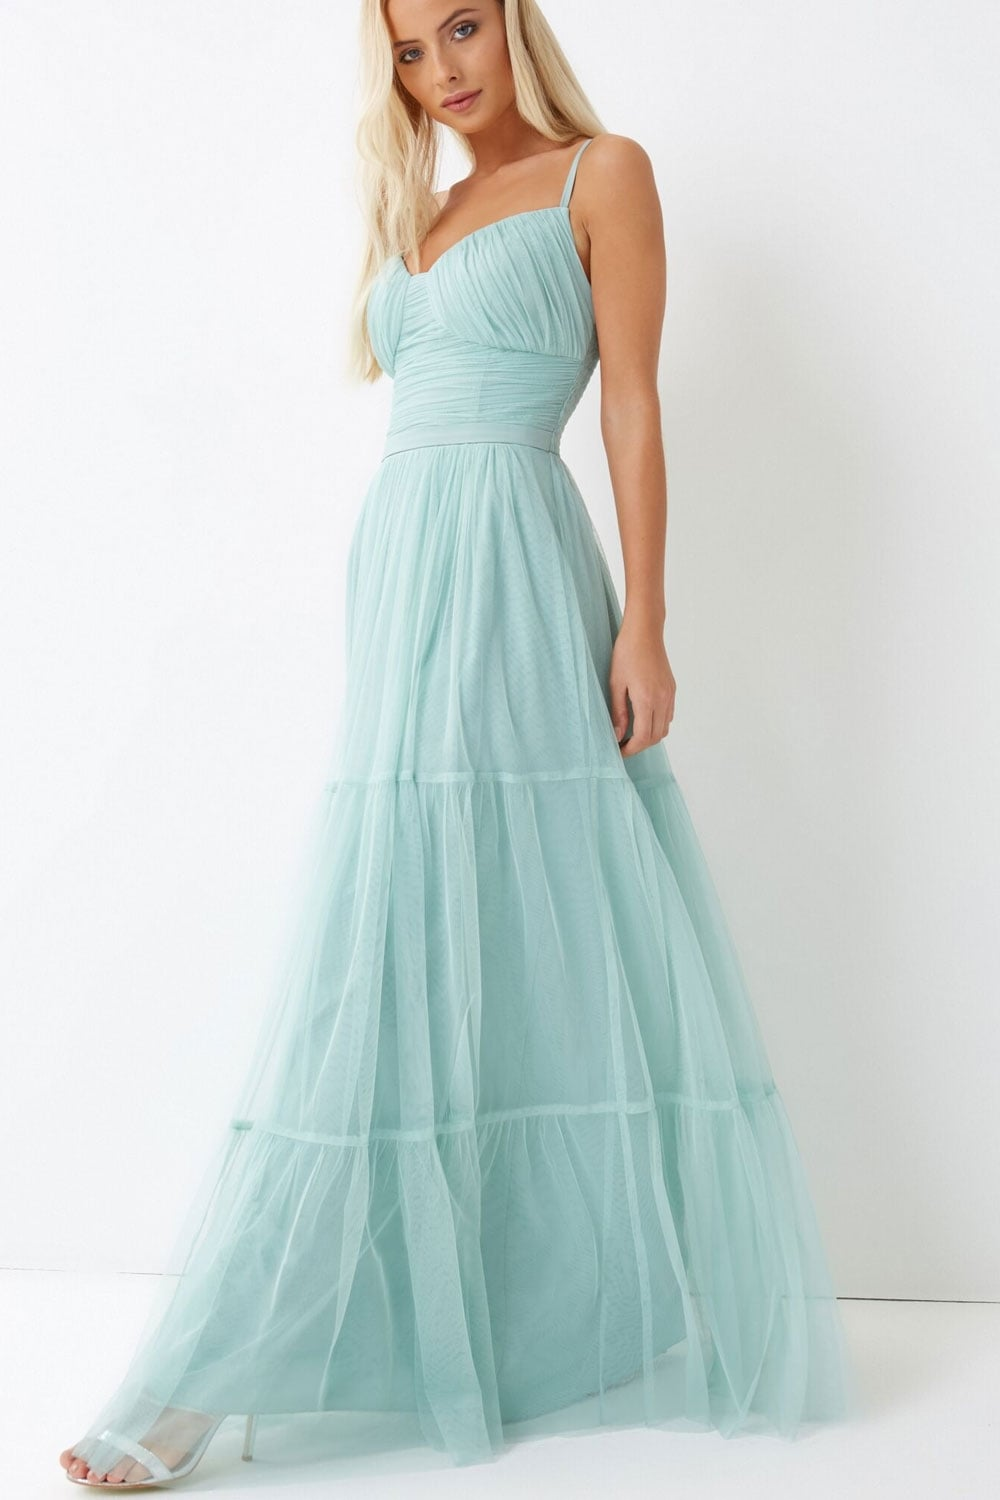 Green Tulle Maxi Dress From Little Mistress Uk